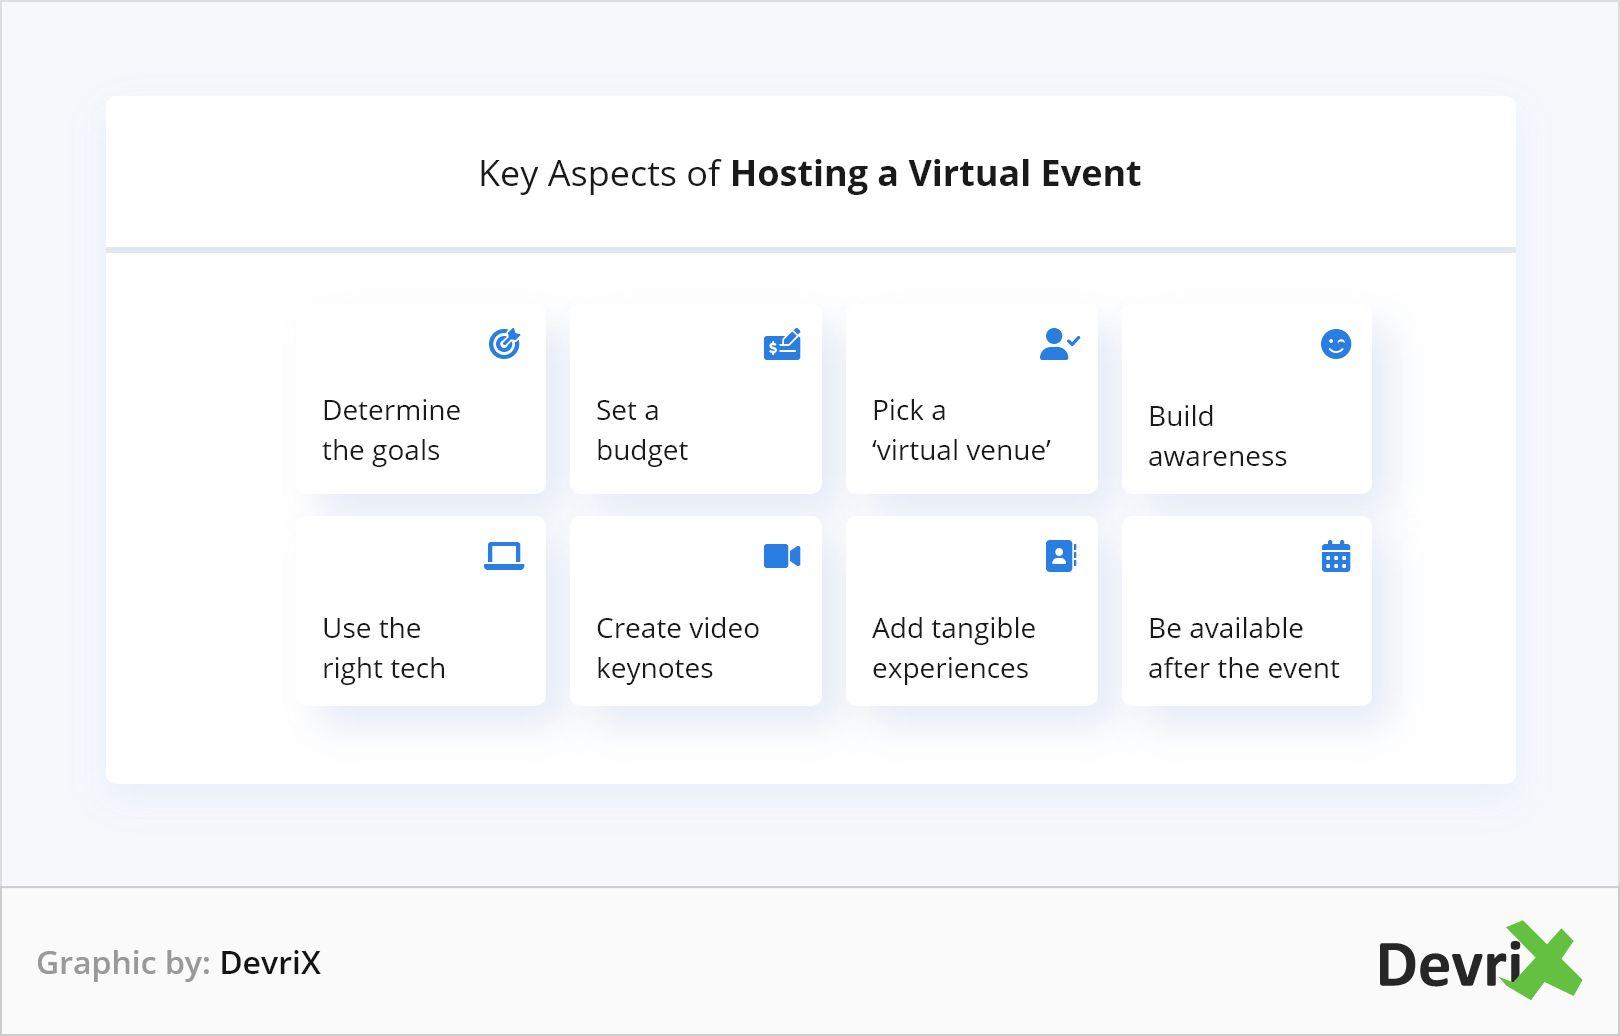 Key Aspects of Hosting a Virtual Event